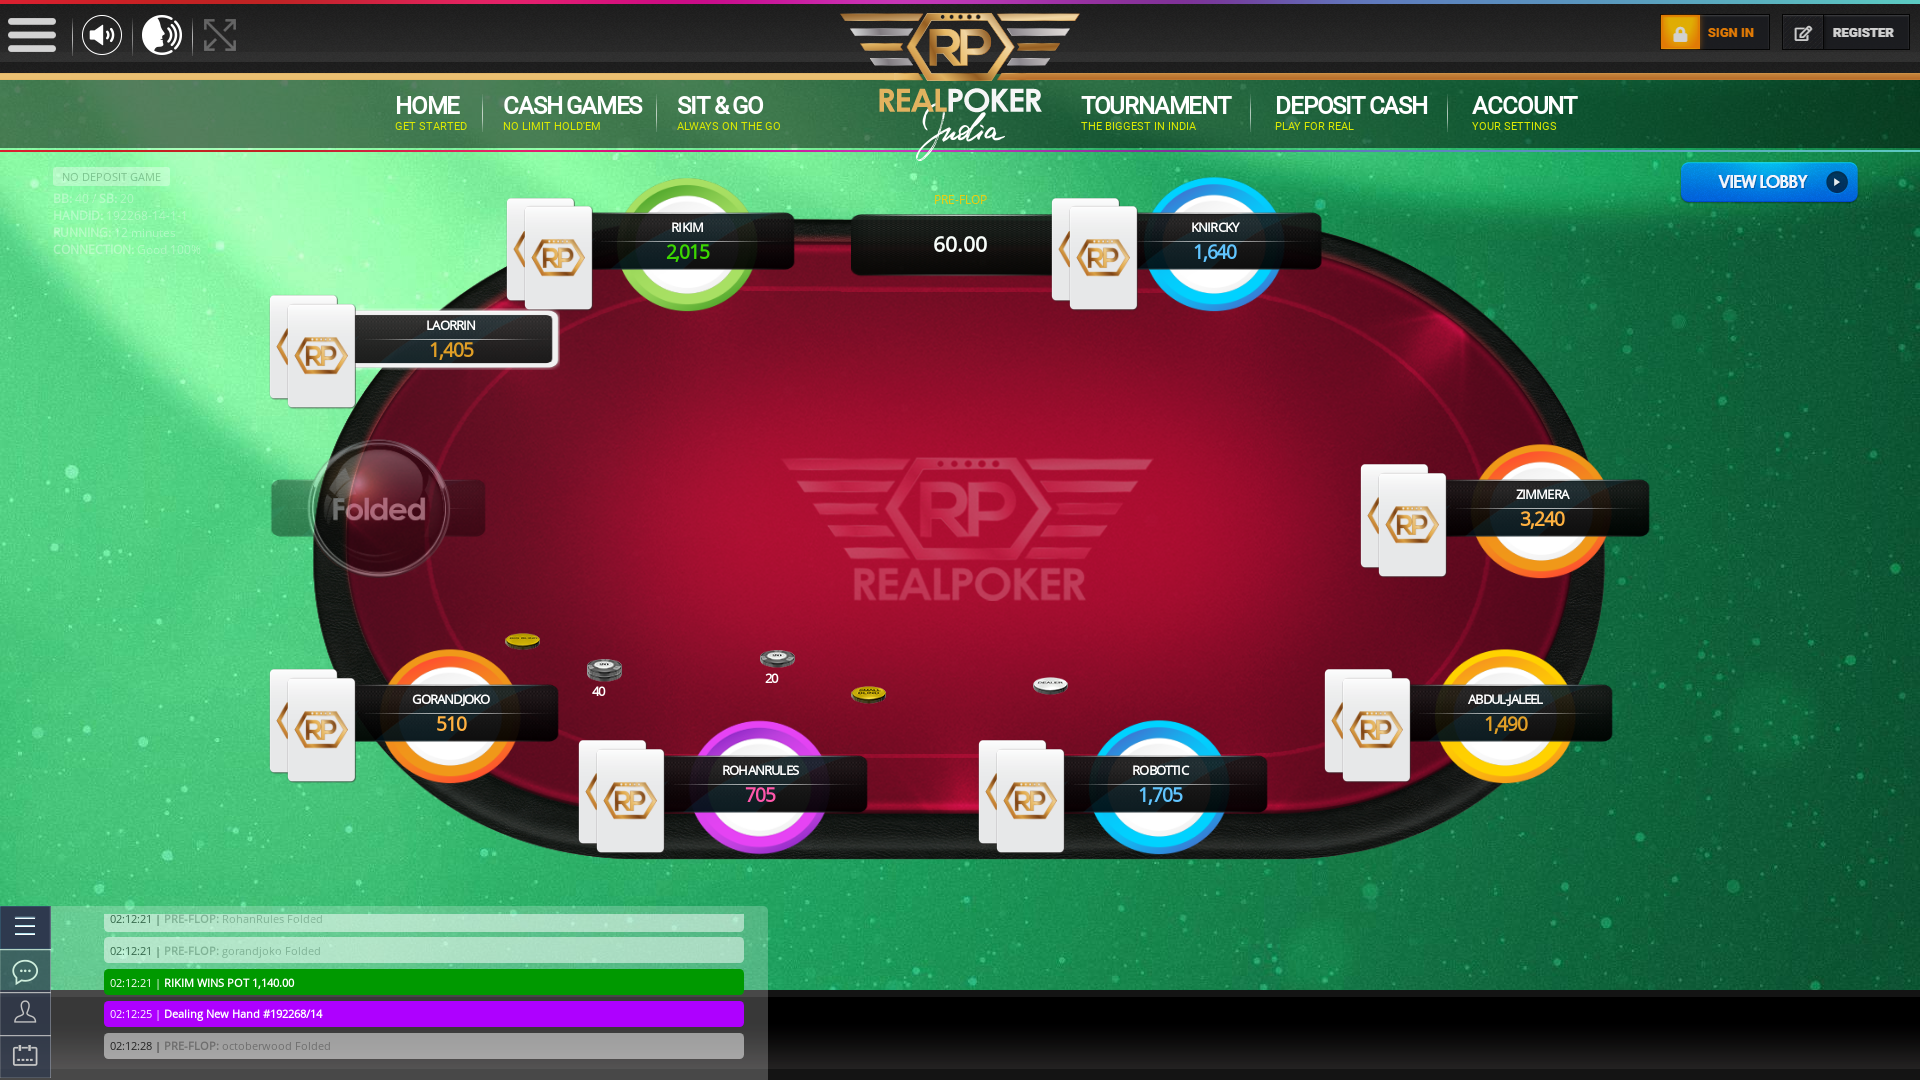 How to play online poker under 21 playing online poker for money in the us